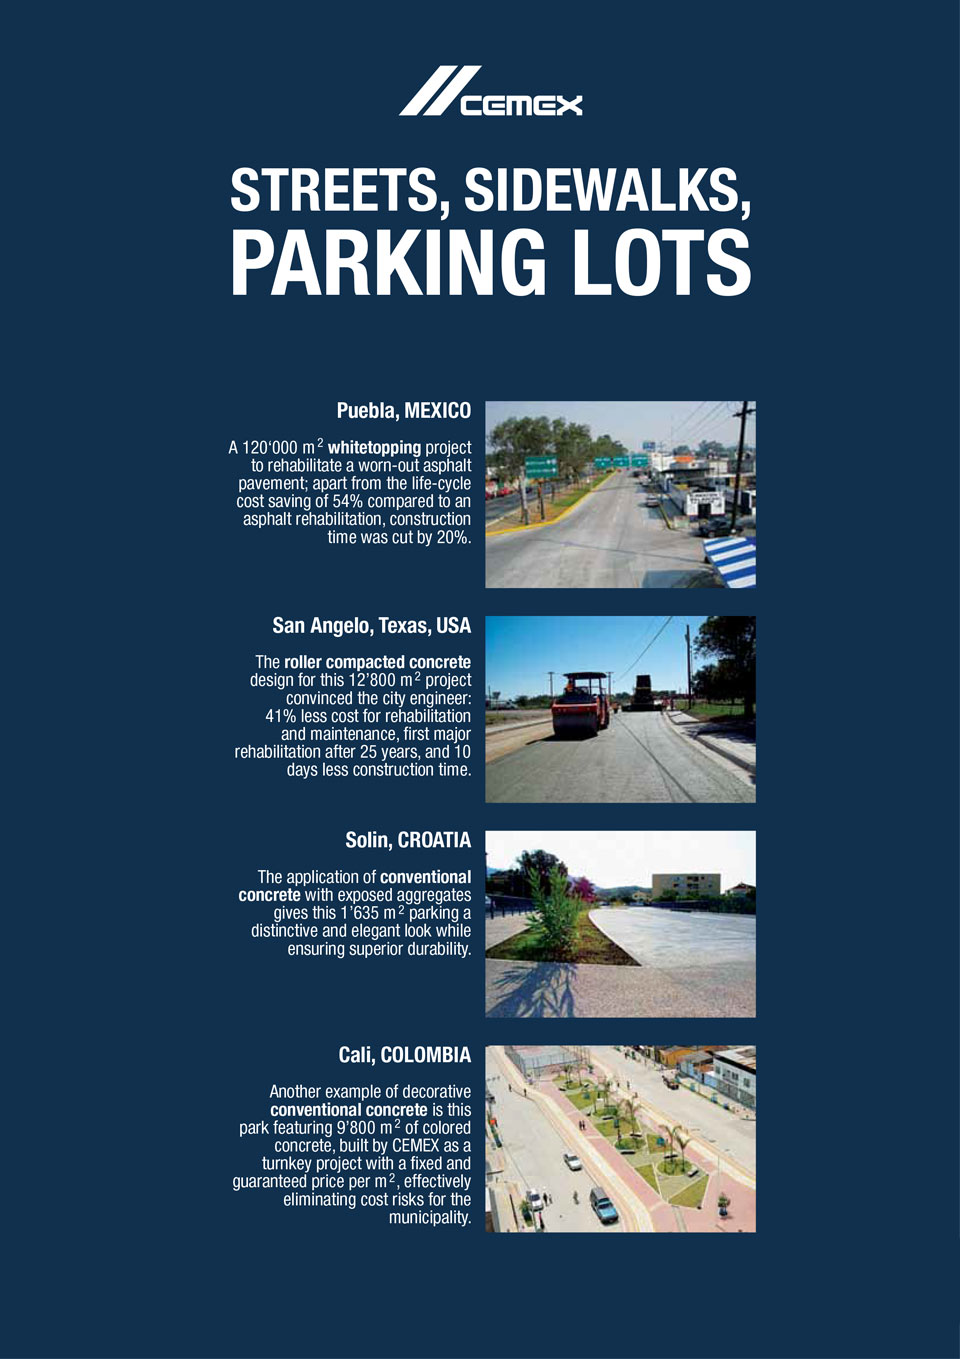 the image shows several streets, sidewalks, and parking lots CEMEX has helped with the construction of